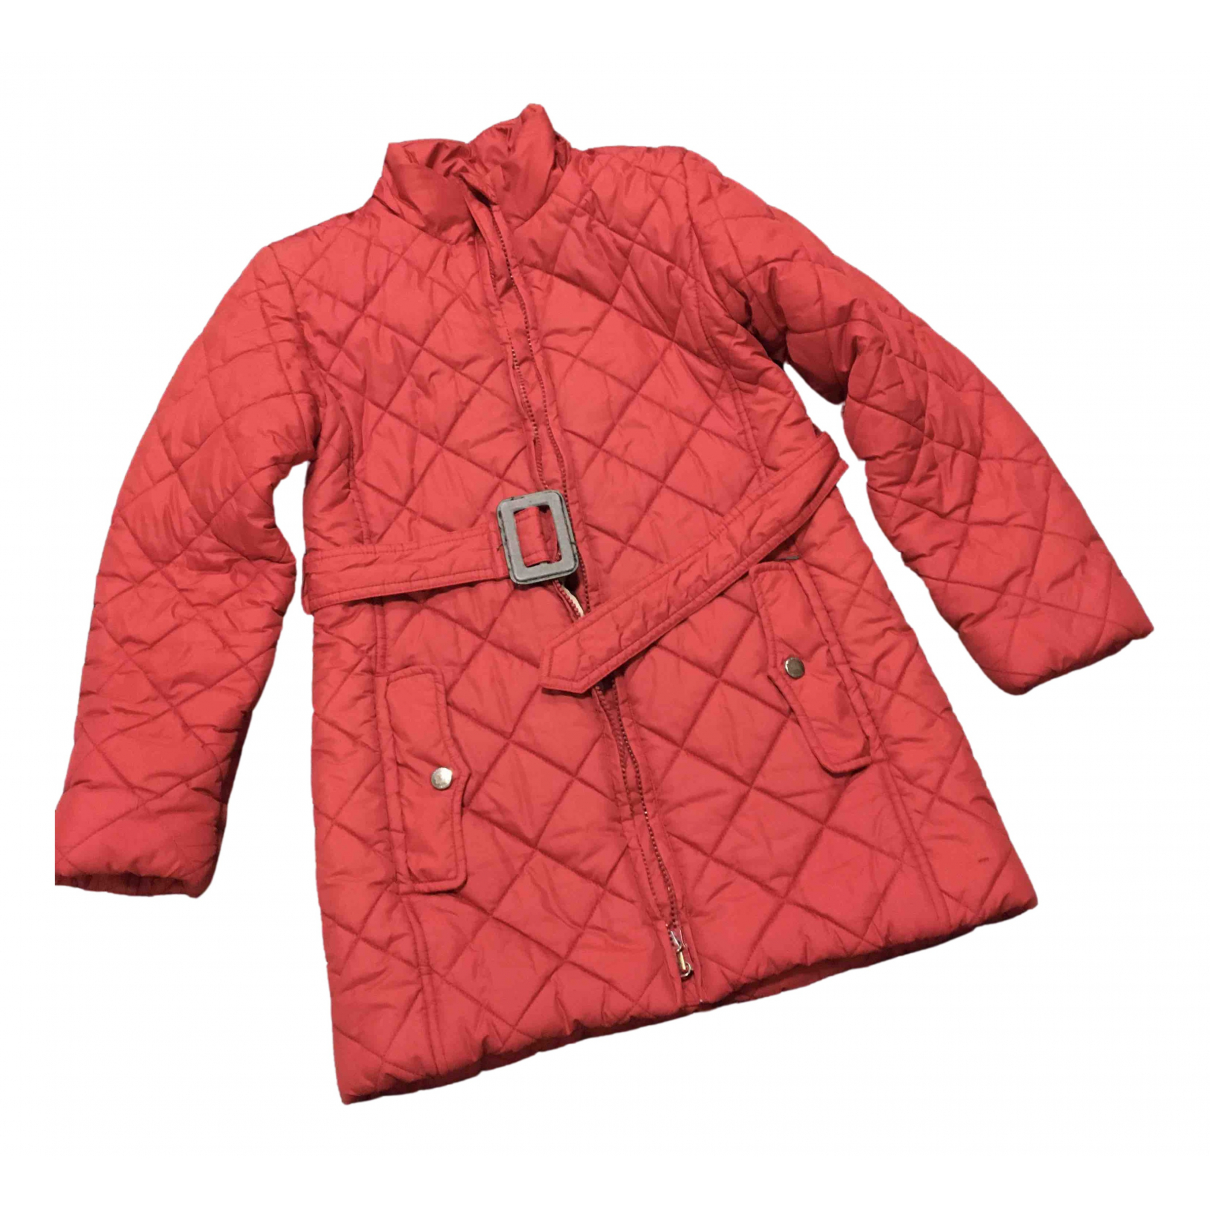 Burberry \N Red jacket & coat for Kids 8 years - up to 128cm FR